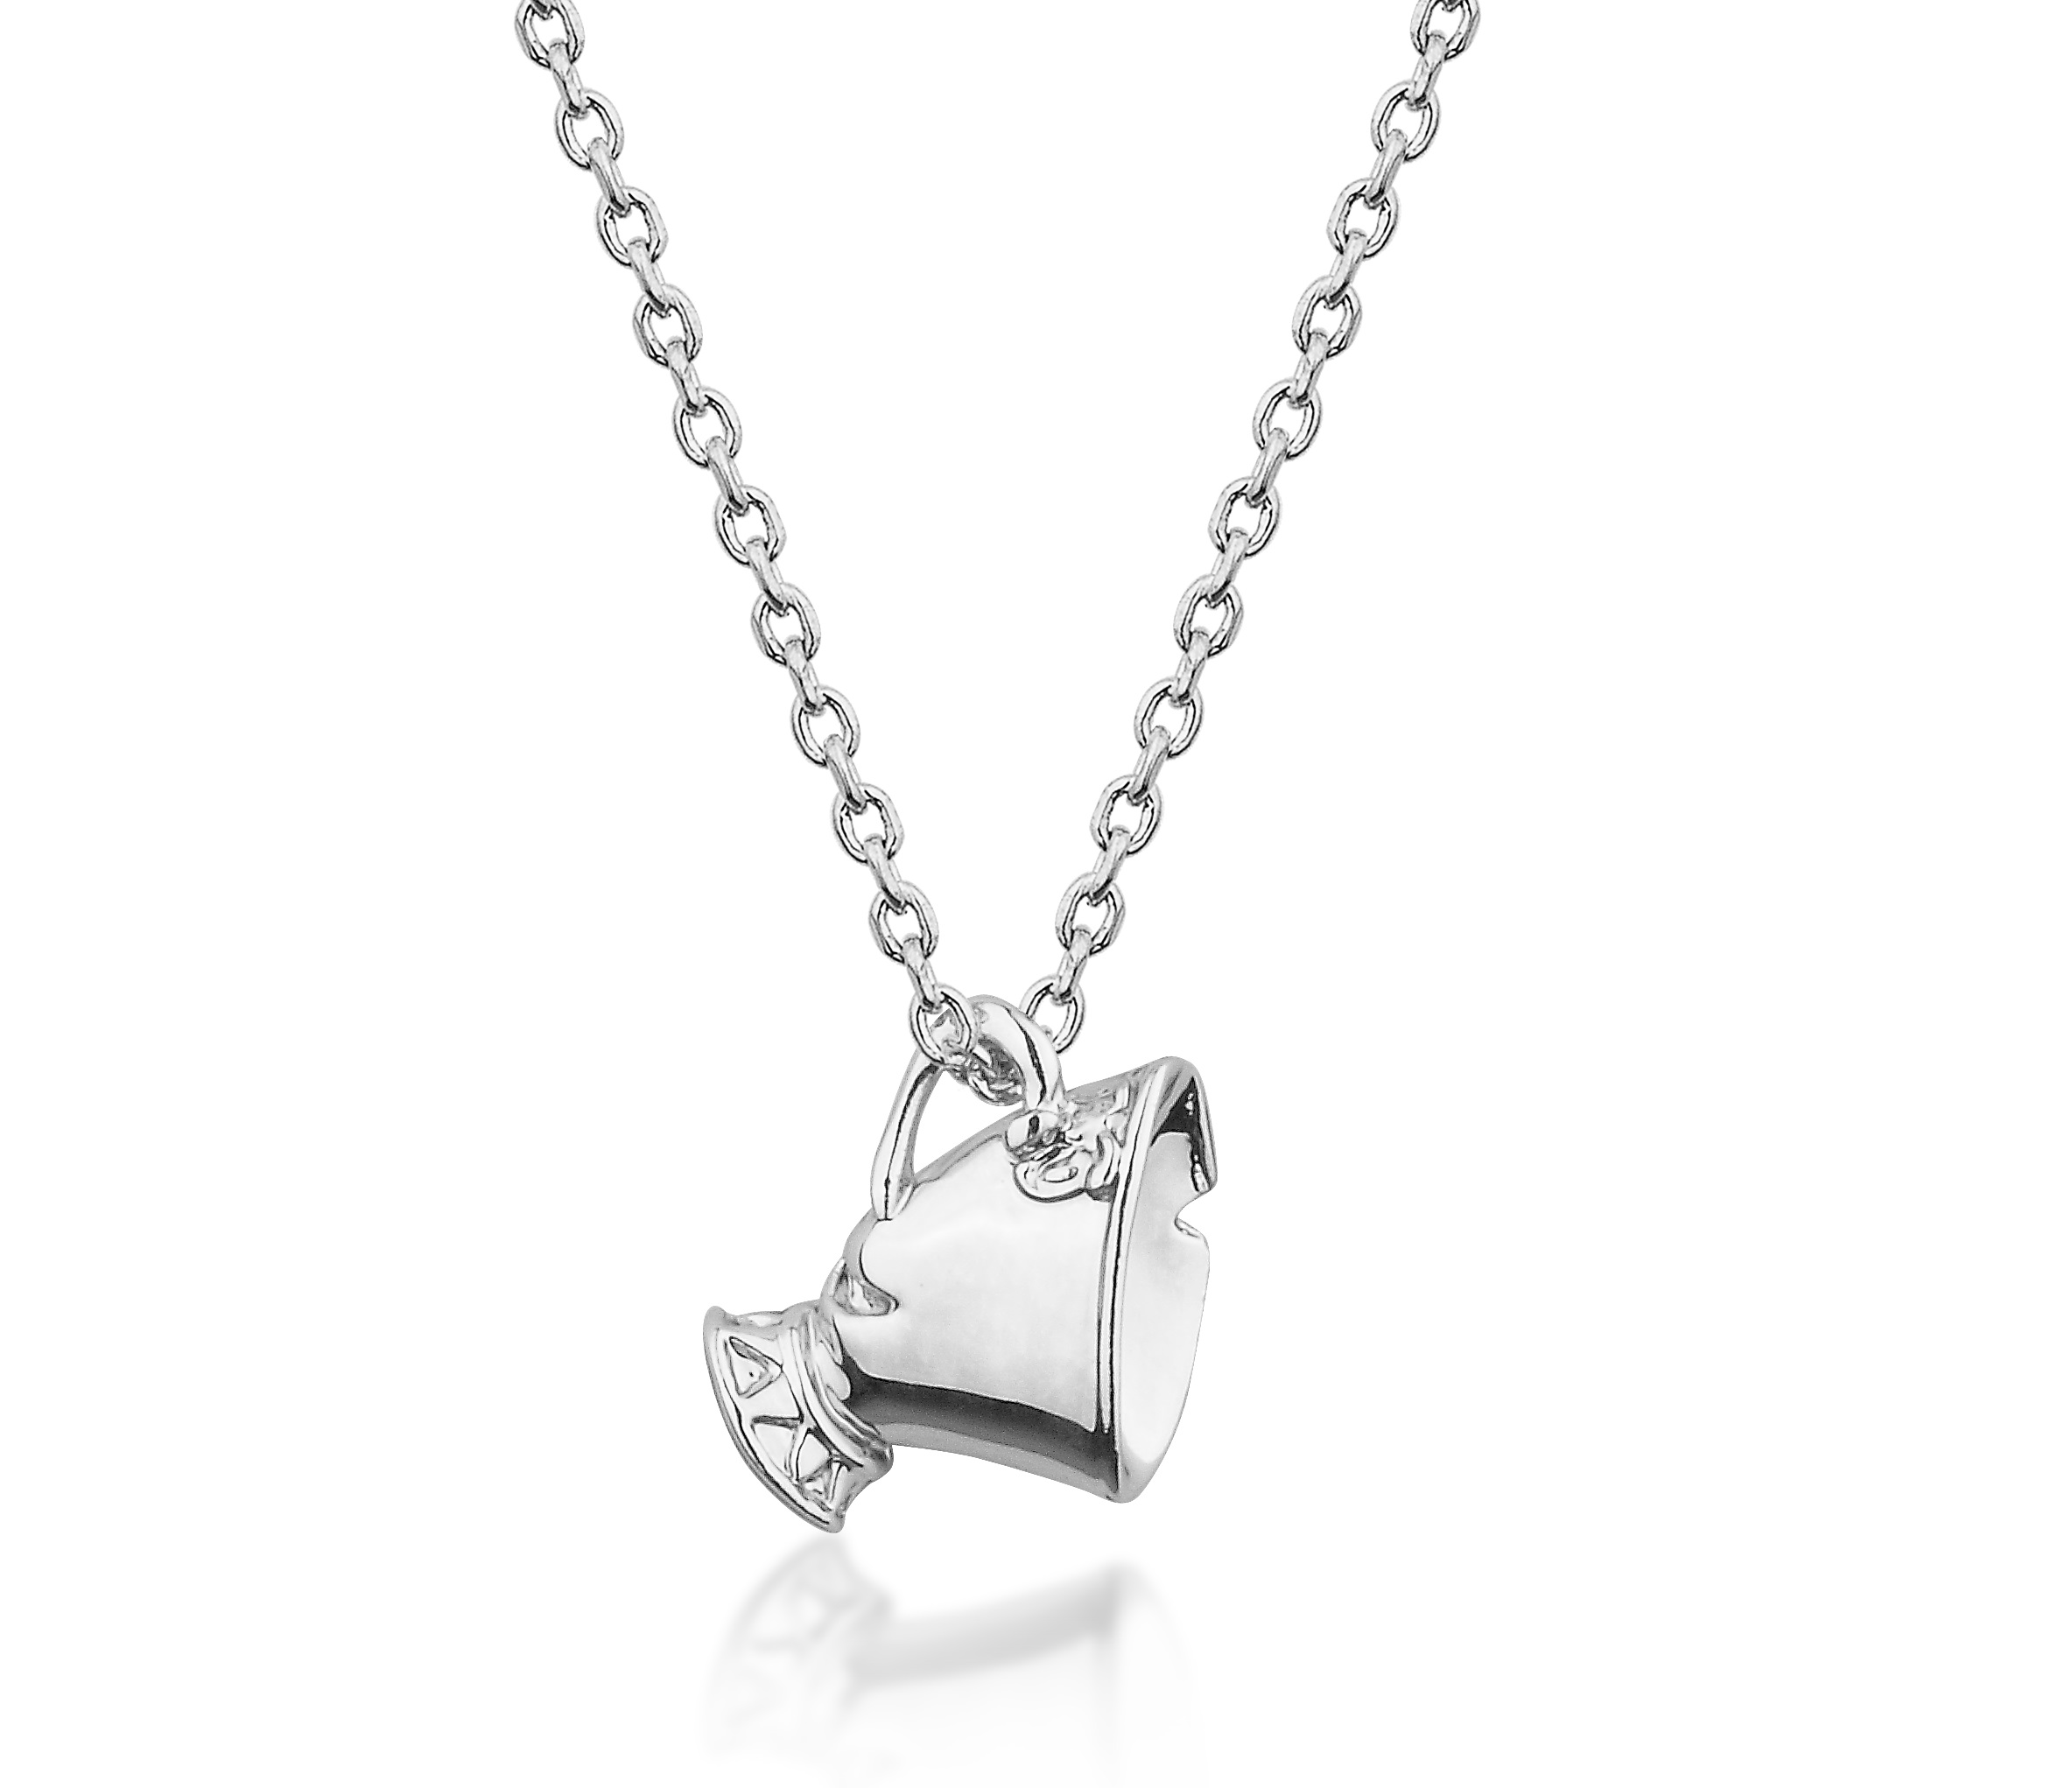 ... JUNIOR Beauty & the Beast White Gold-Plated Chip Tea Cup Necklace